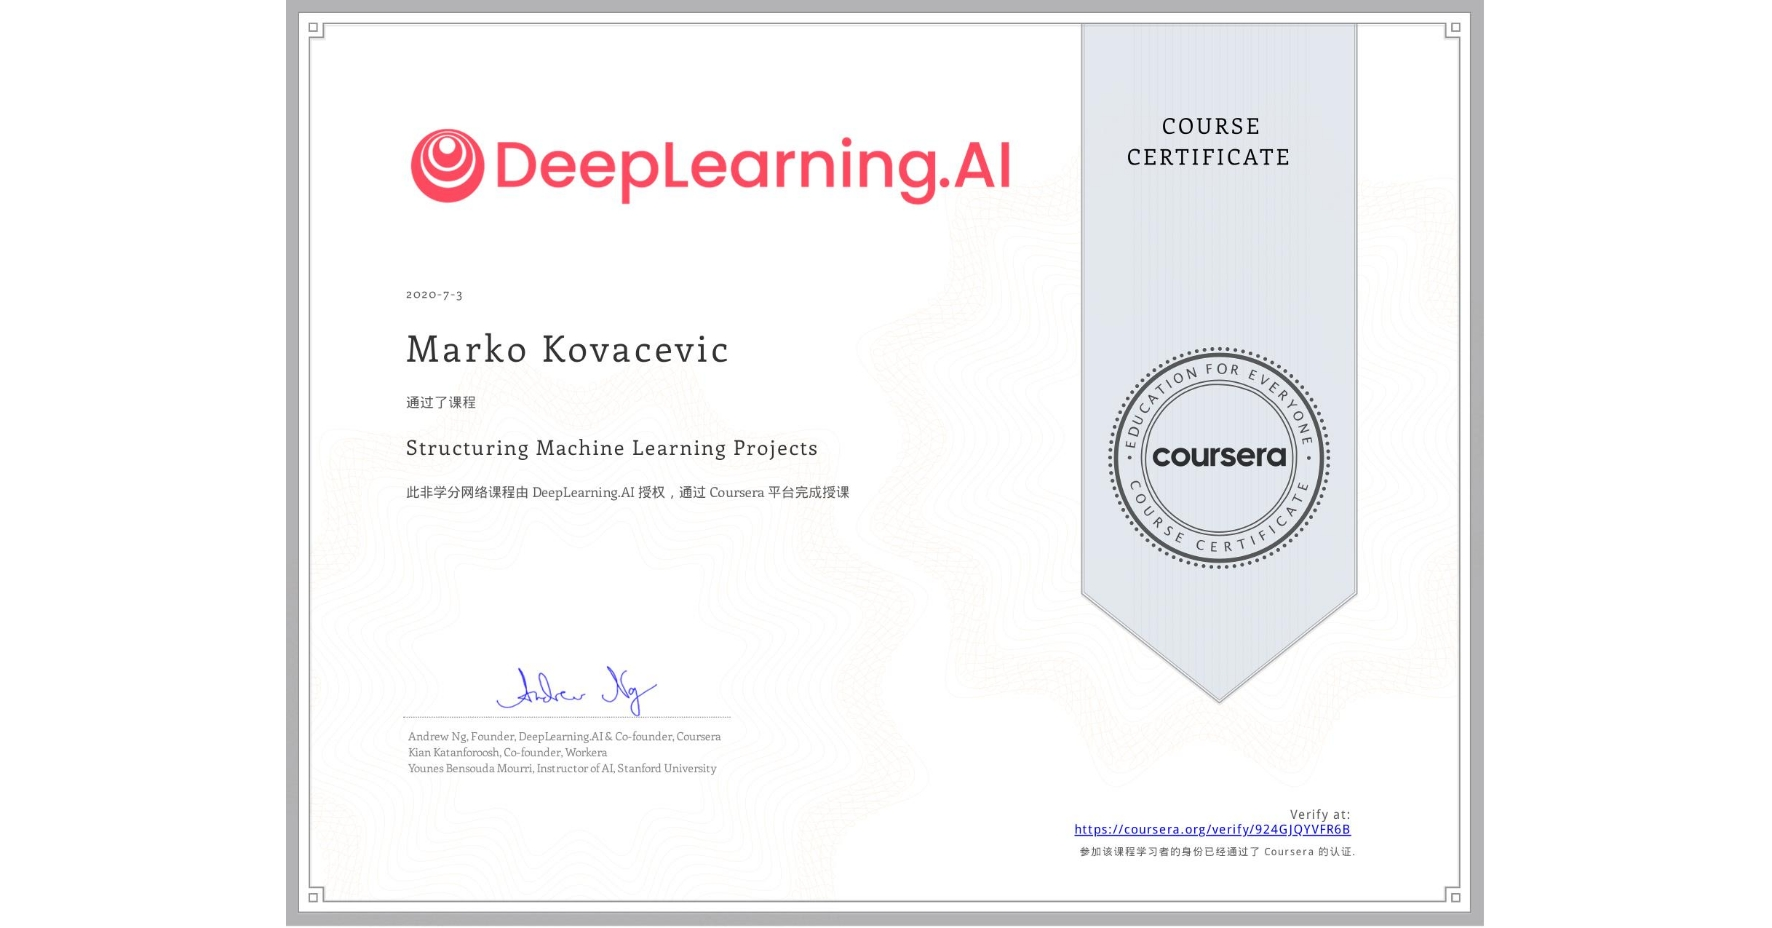 View certificate for Marko Kovacevic, Structuring Machine Learning Projects, an online non-credit course authorized by DeepLearning.AI and offered through Coursera